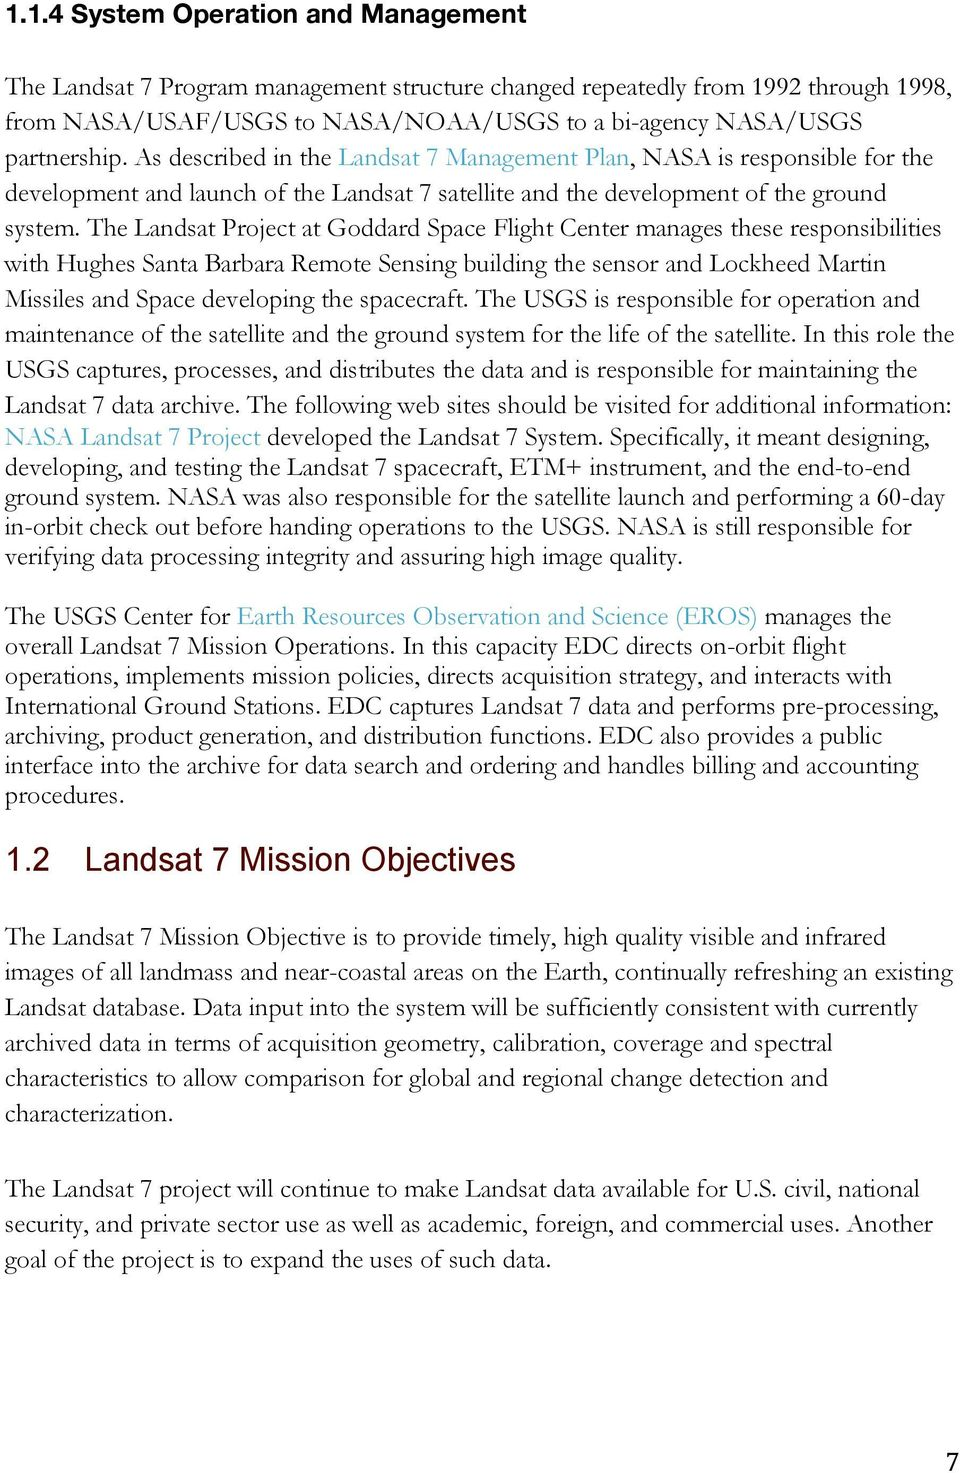 The Landsat Project at Goddard Space Flight Center manages these responsibilities with Hughes Santa Barbara Remote Sensing building the sensor and Lockheed Martin Missiles and Space developing the